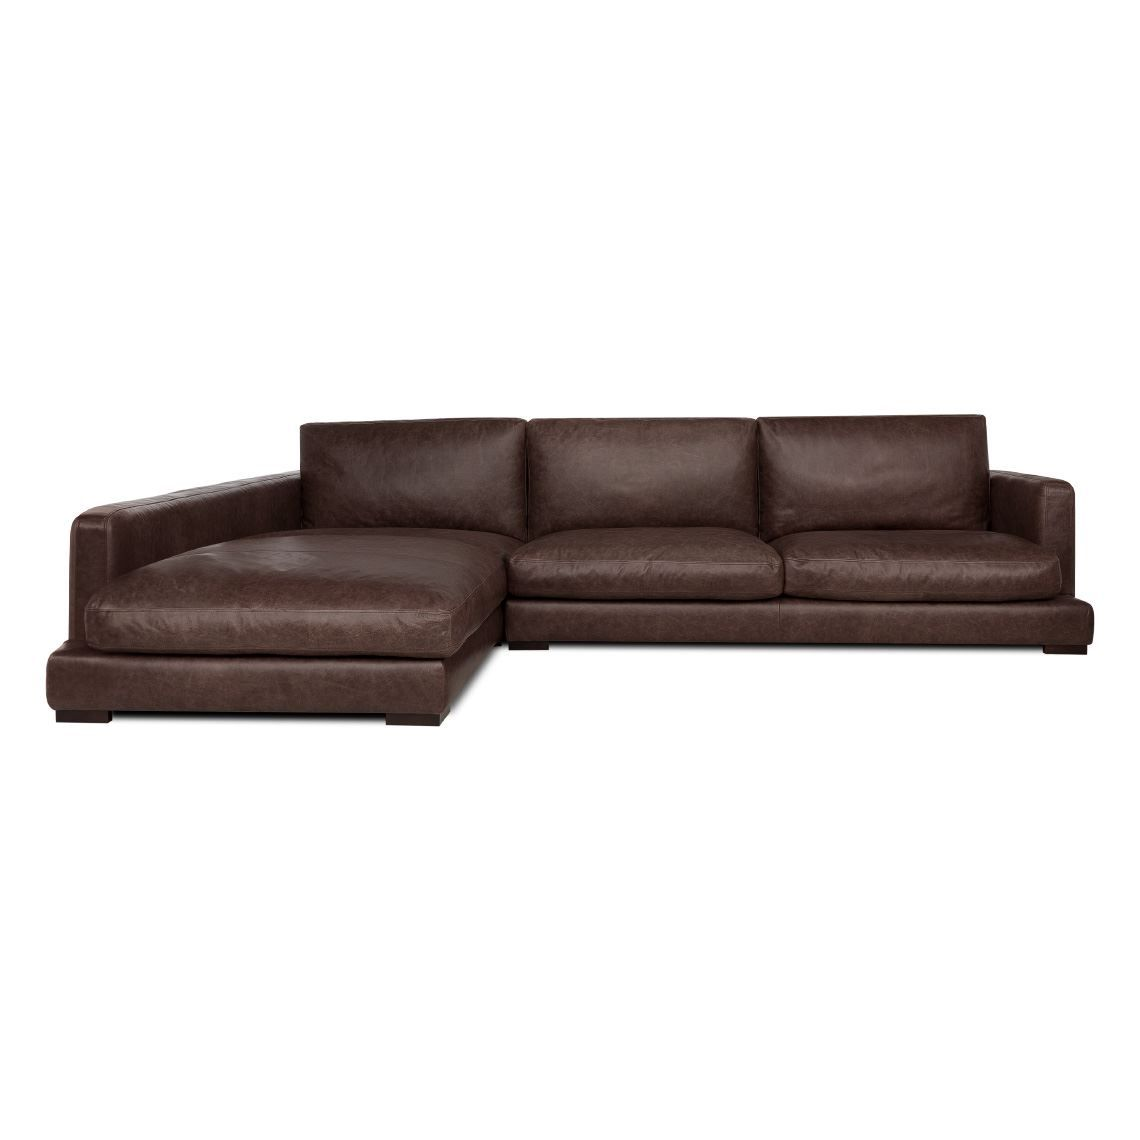 HAMILTON 3 Seat Leather Modular Sofa With Left Terminal | Products ...